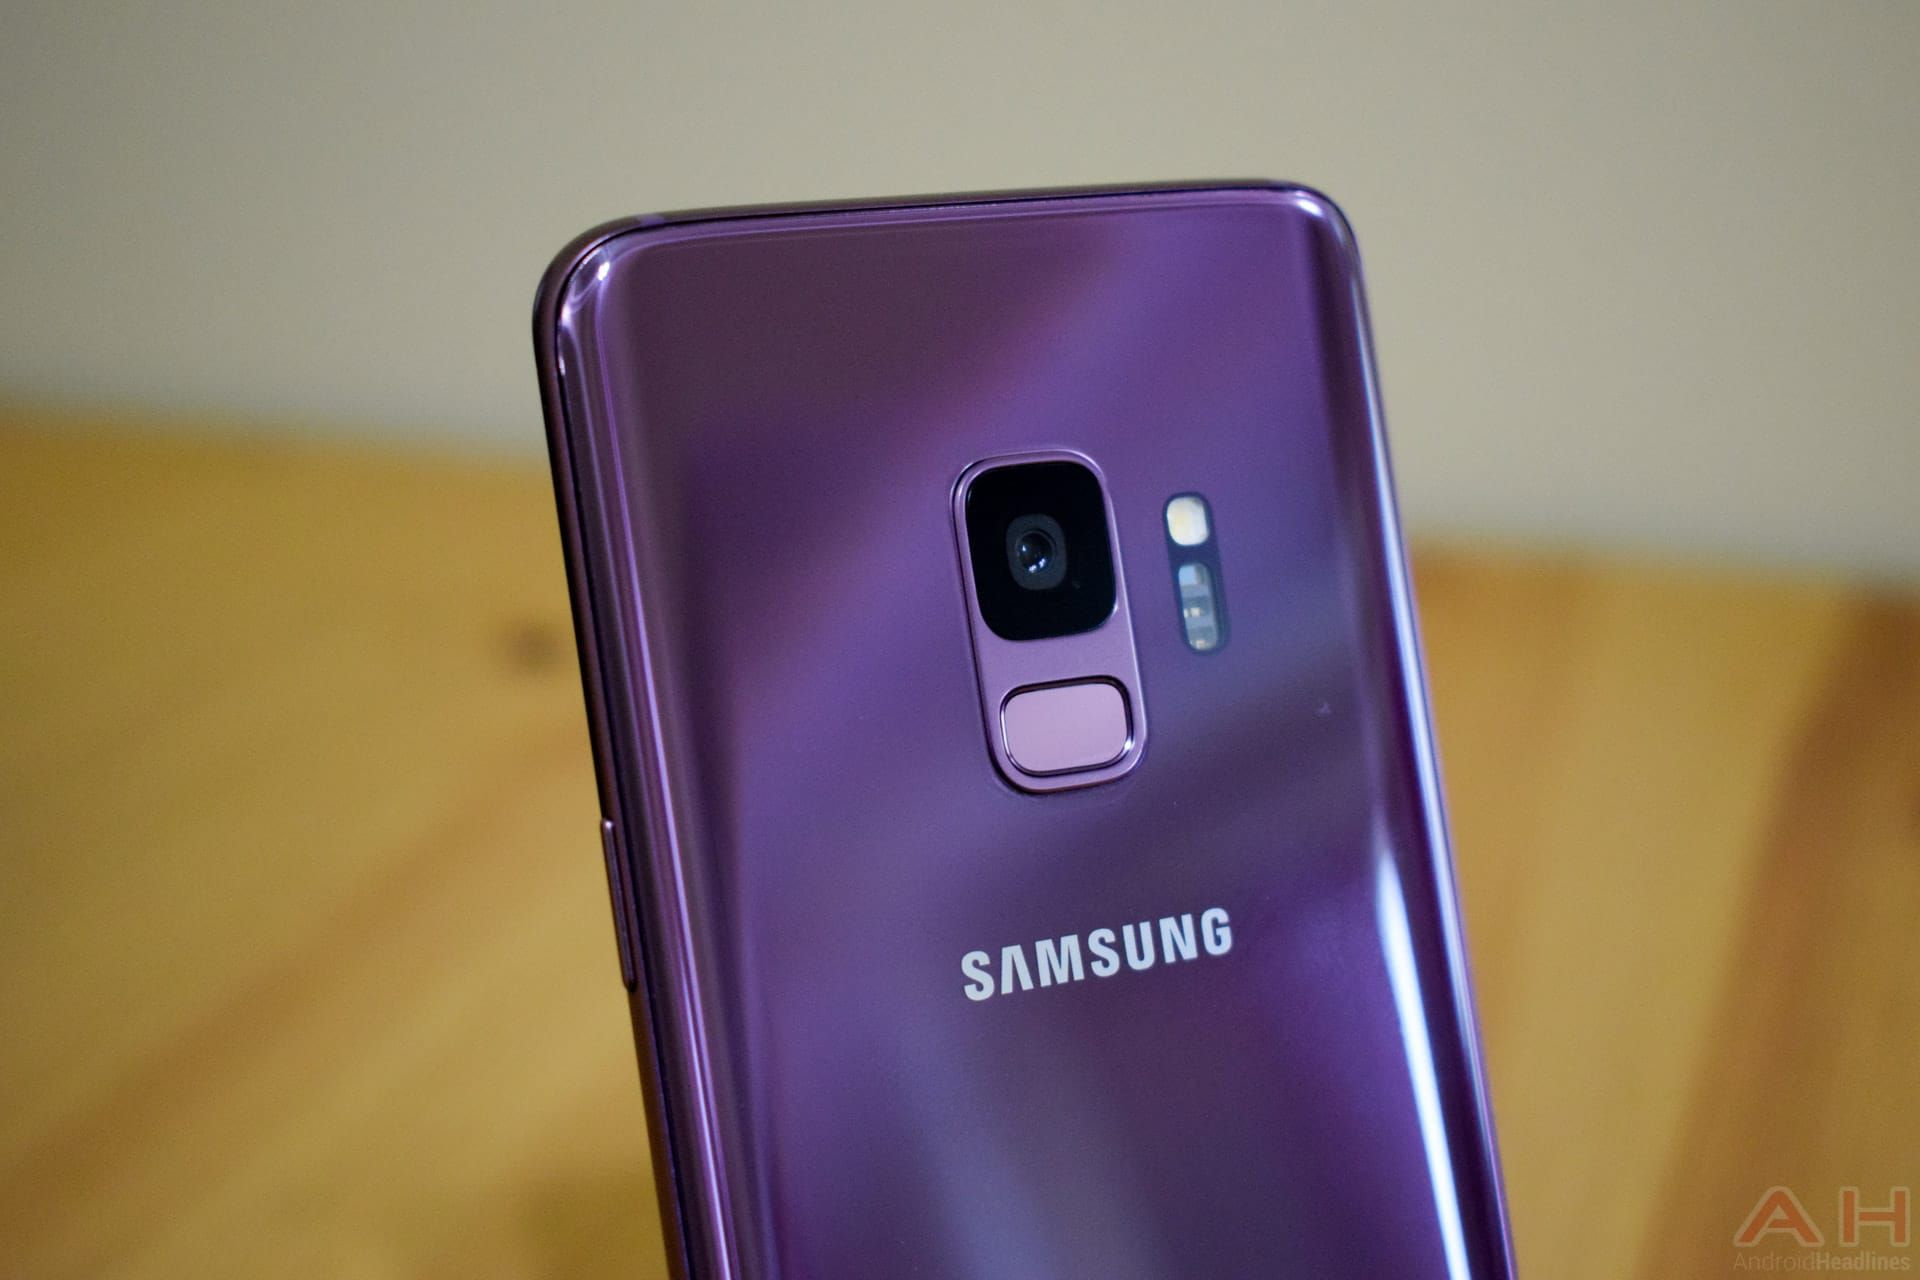 Samsung Galaxy S9 Plus Outsold All Other Phones In April 2018 Samsung Galaxy S9 Samsung Samsung Galaxy